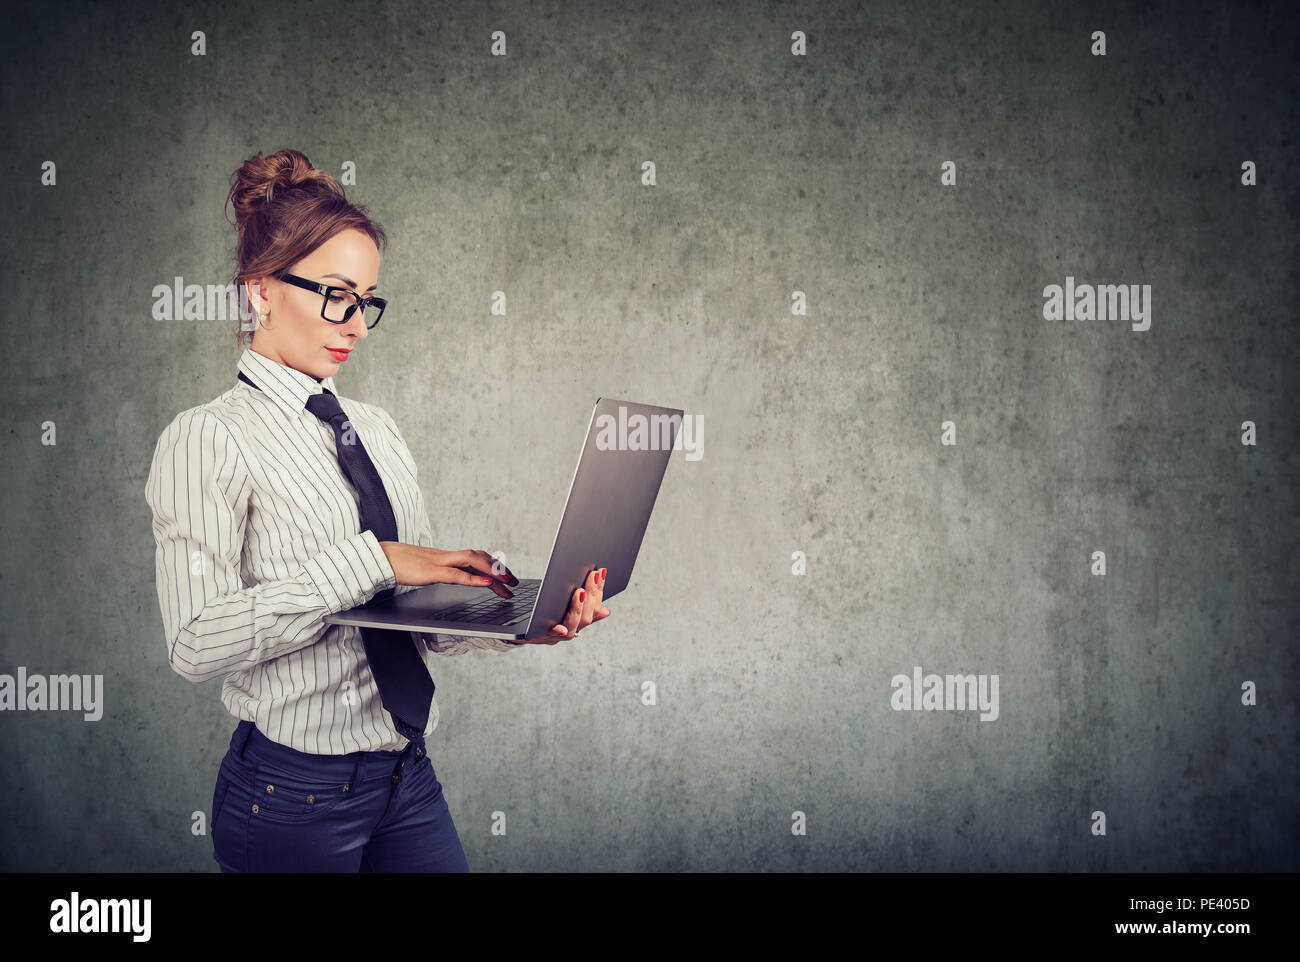 Serious professional woman in formal outfit and glasses using laptop and working against gray wall background - Stock Image